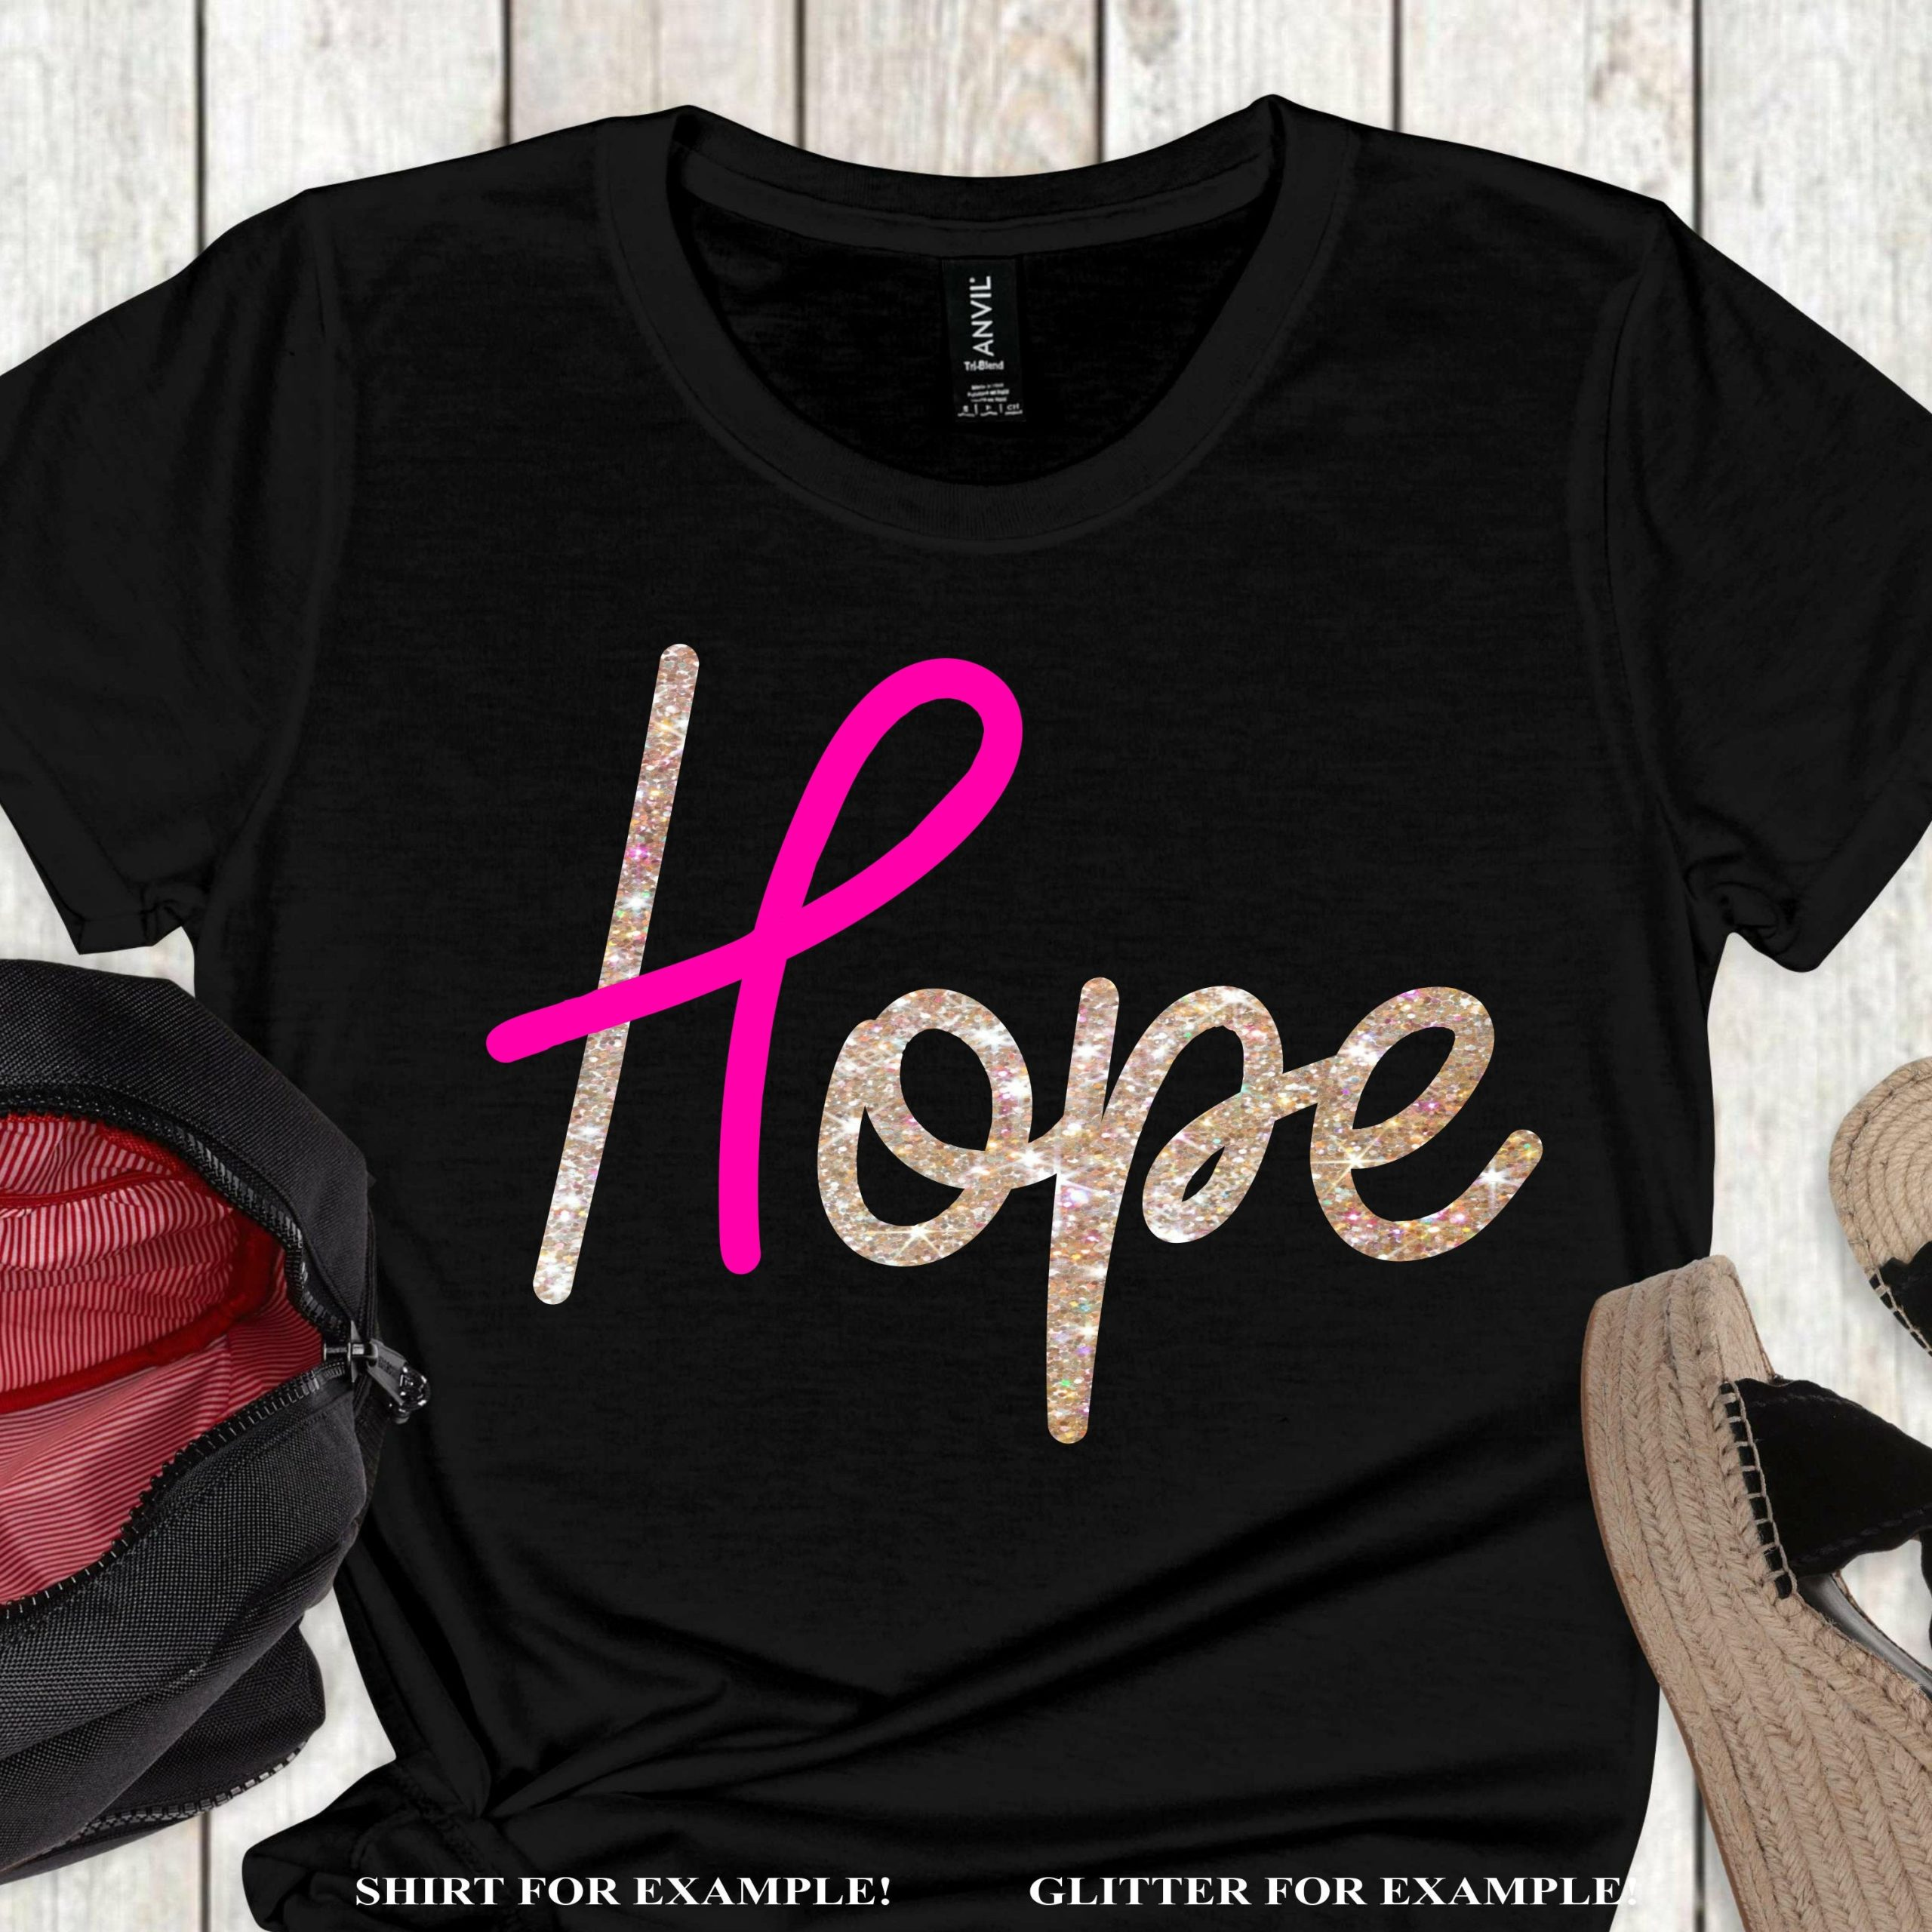 Hope-cancer-ribbon-svg-cancer-svg-cancer-svg-awareness-svg-cancer-ribbon-svgshirt-svgsurvivor-svg-svg-for-cricut-silhouette-cut-file-5ef790e3